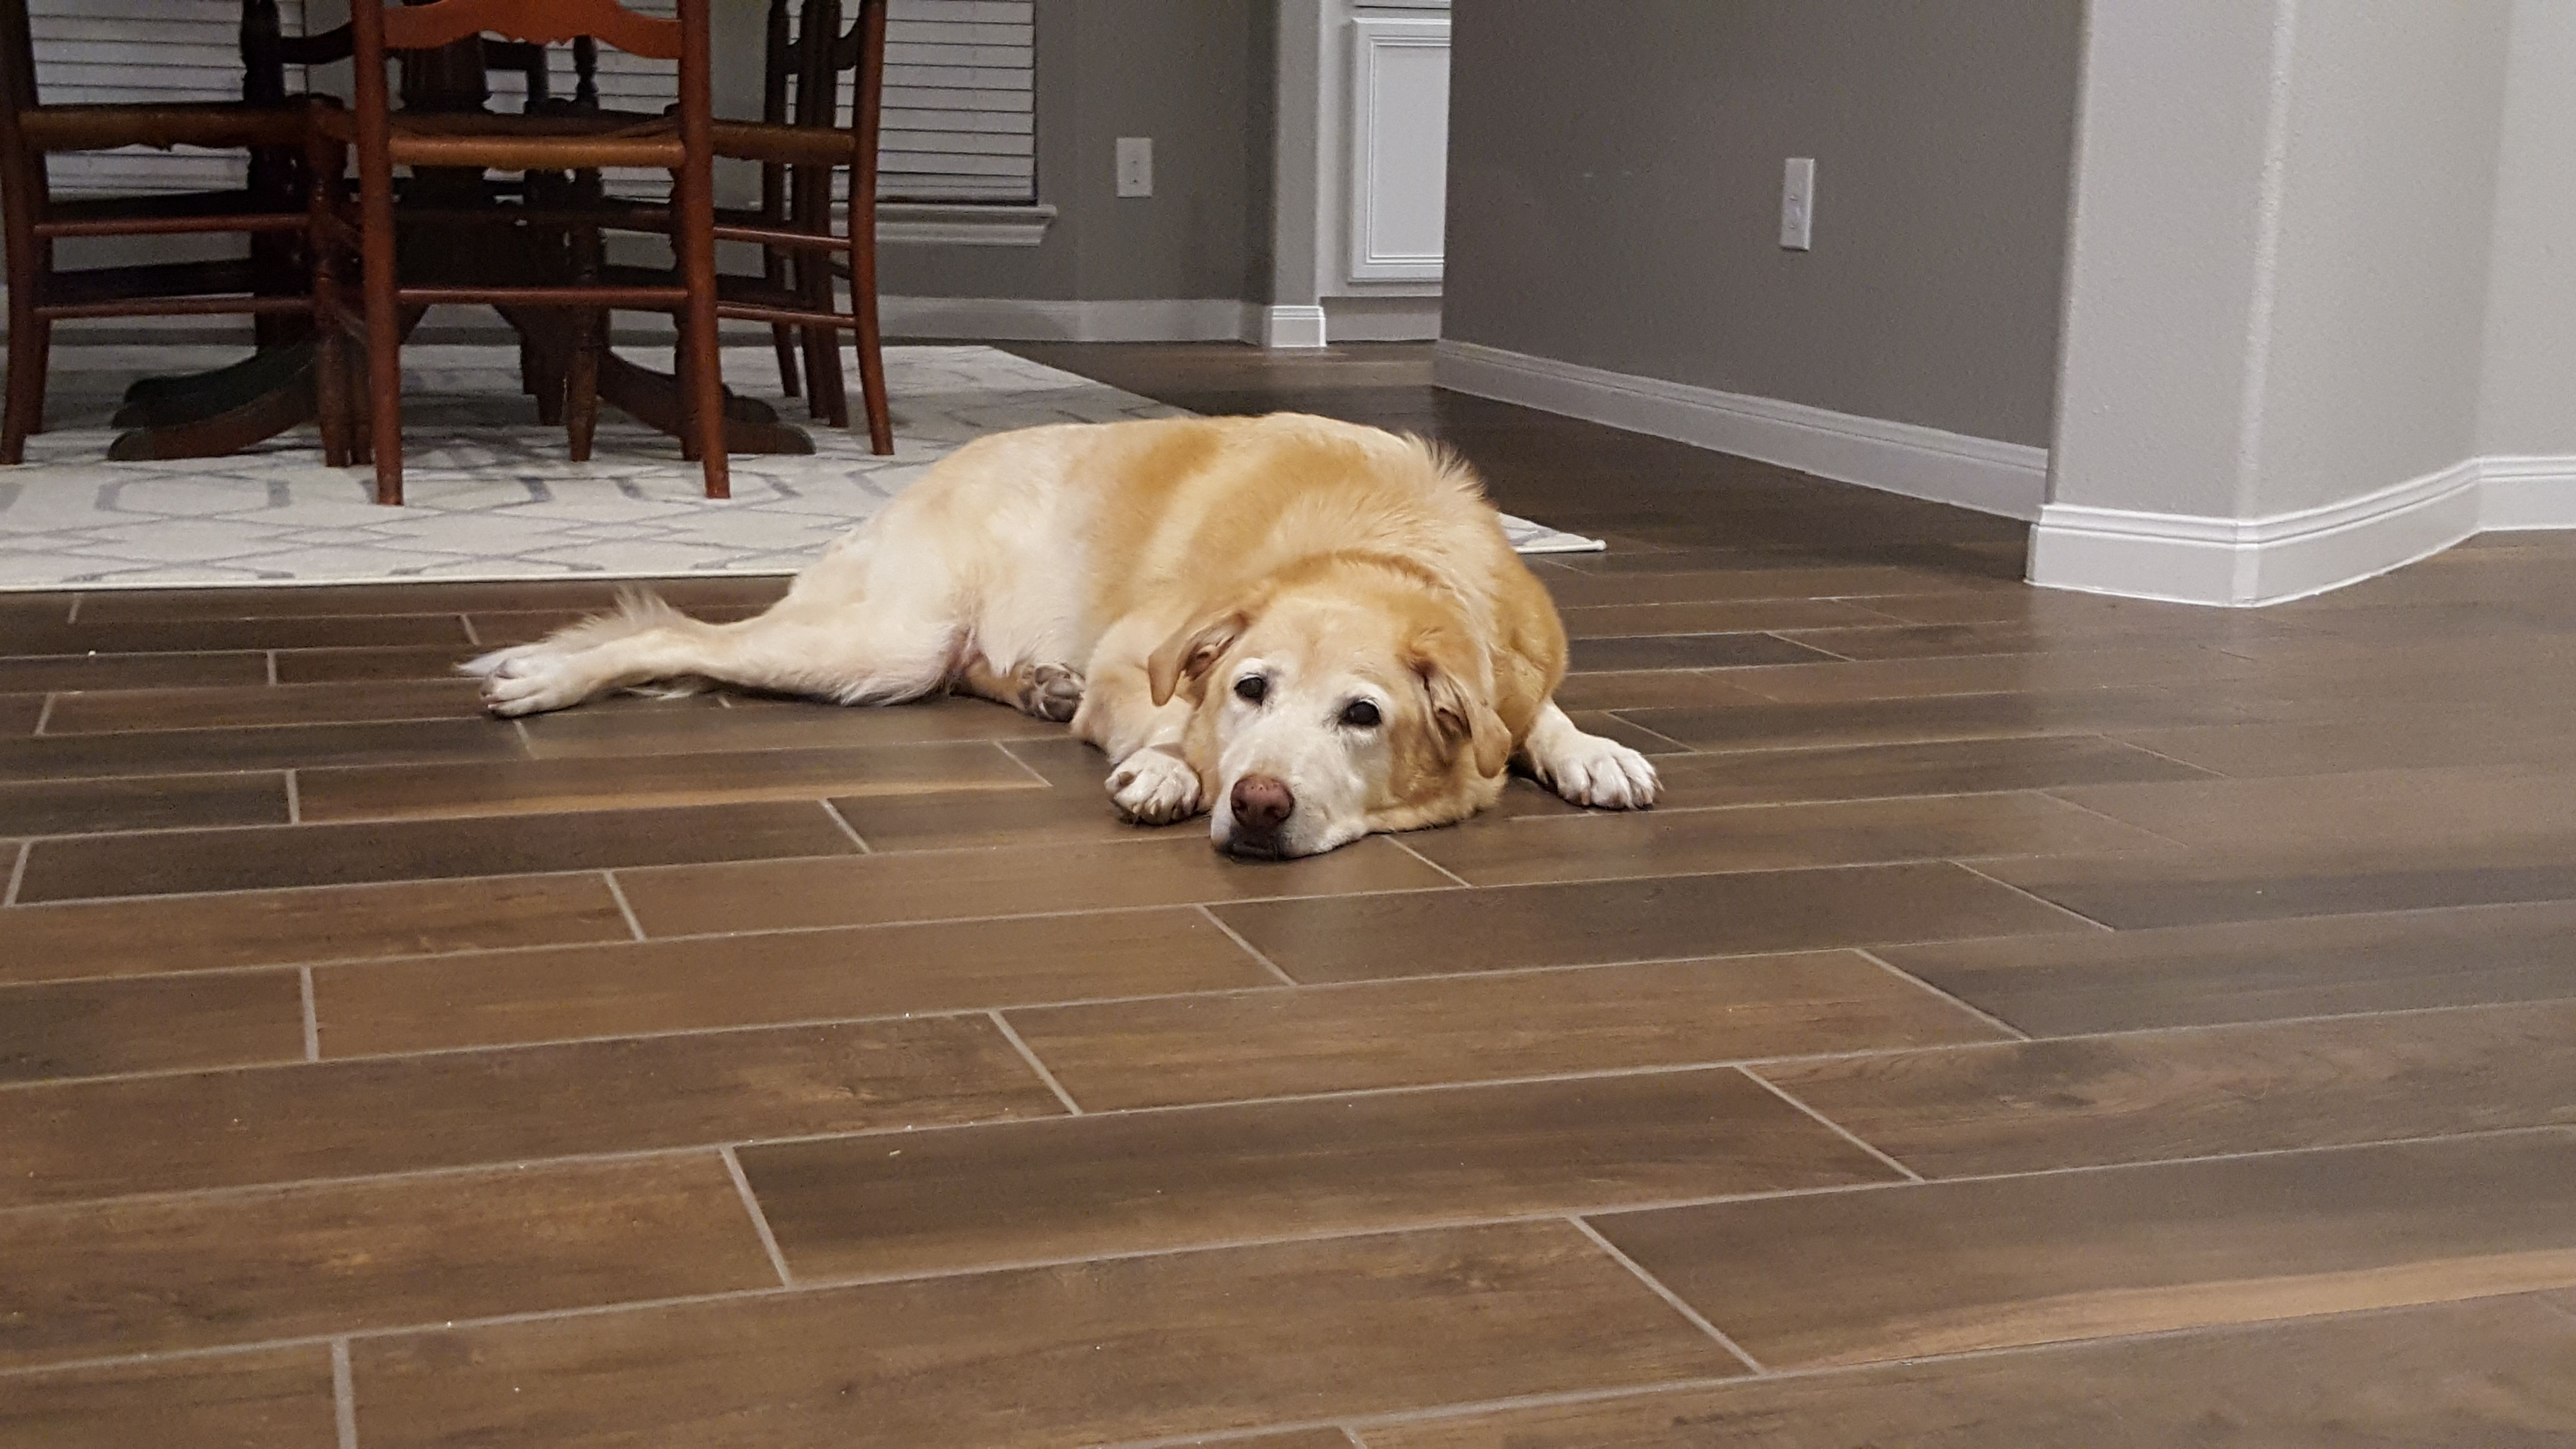 Macy Is An Adoptable Golden Retriever Searching For A Forever